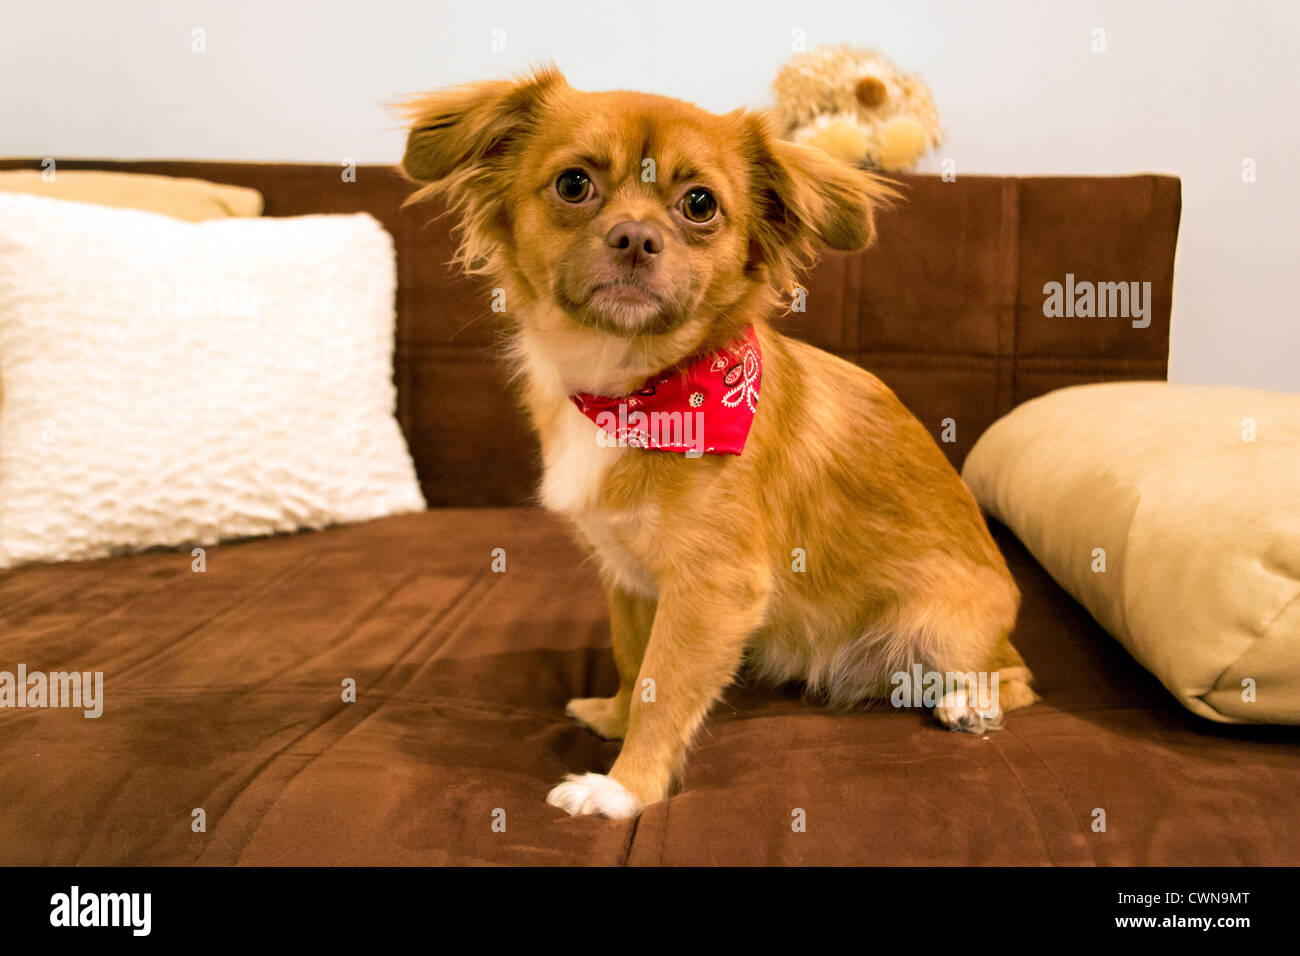 Dog with scarf posing on couch - Stock Image